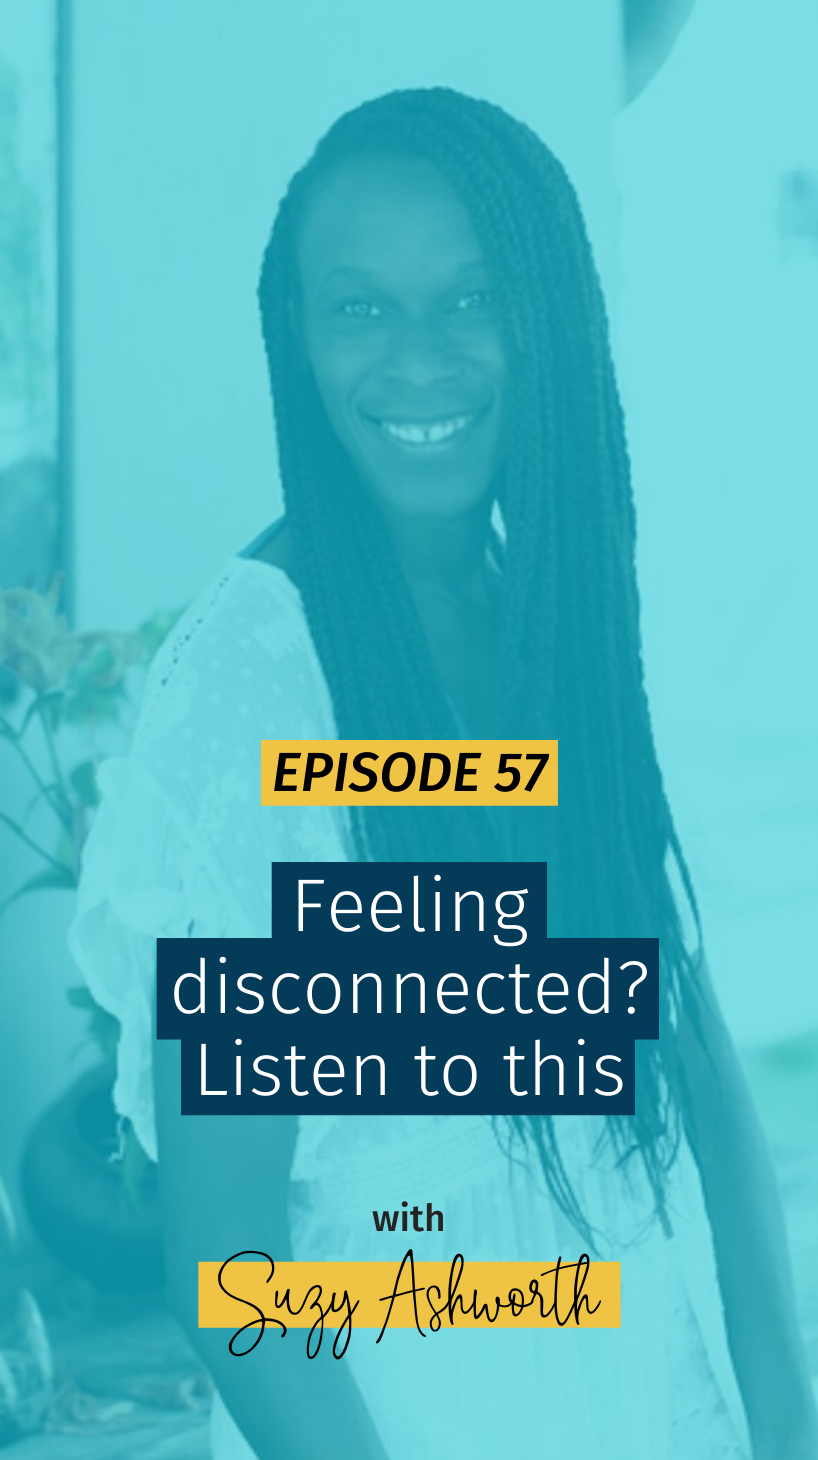 057 Feeling disconnected? Listen to this